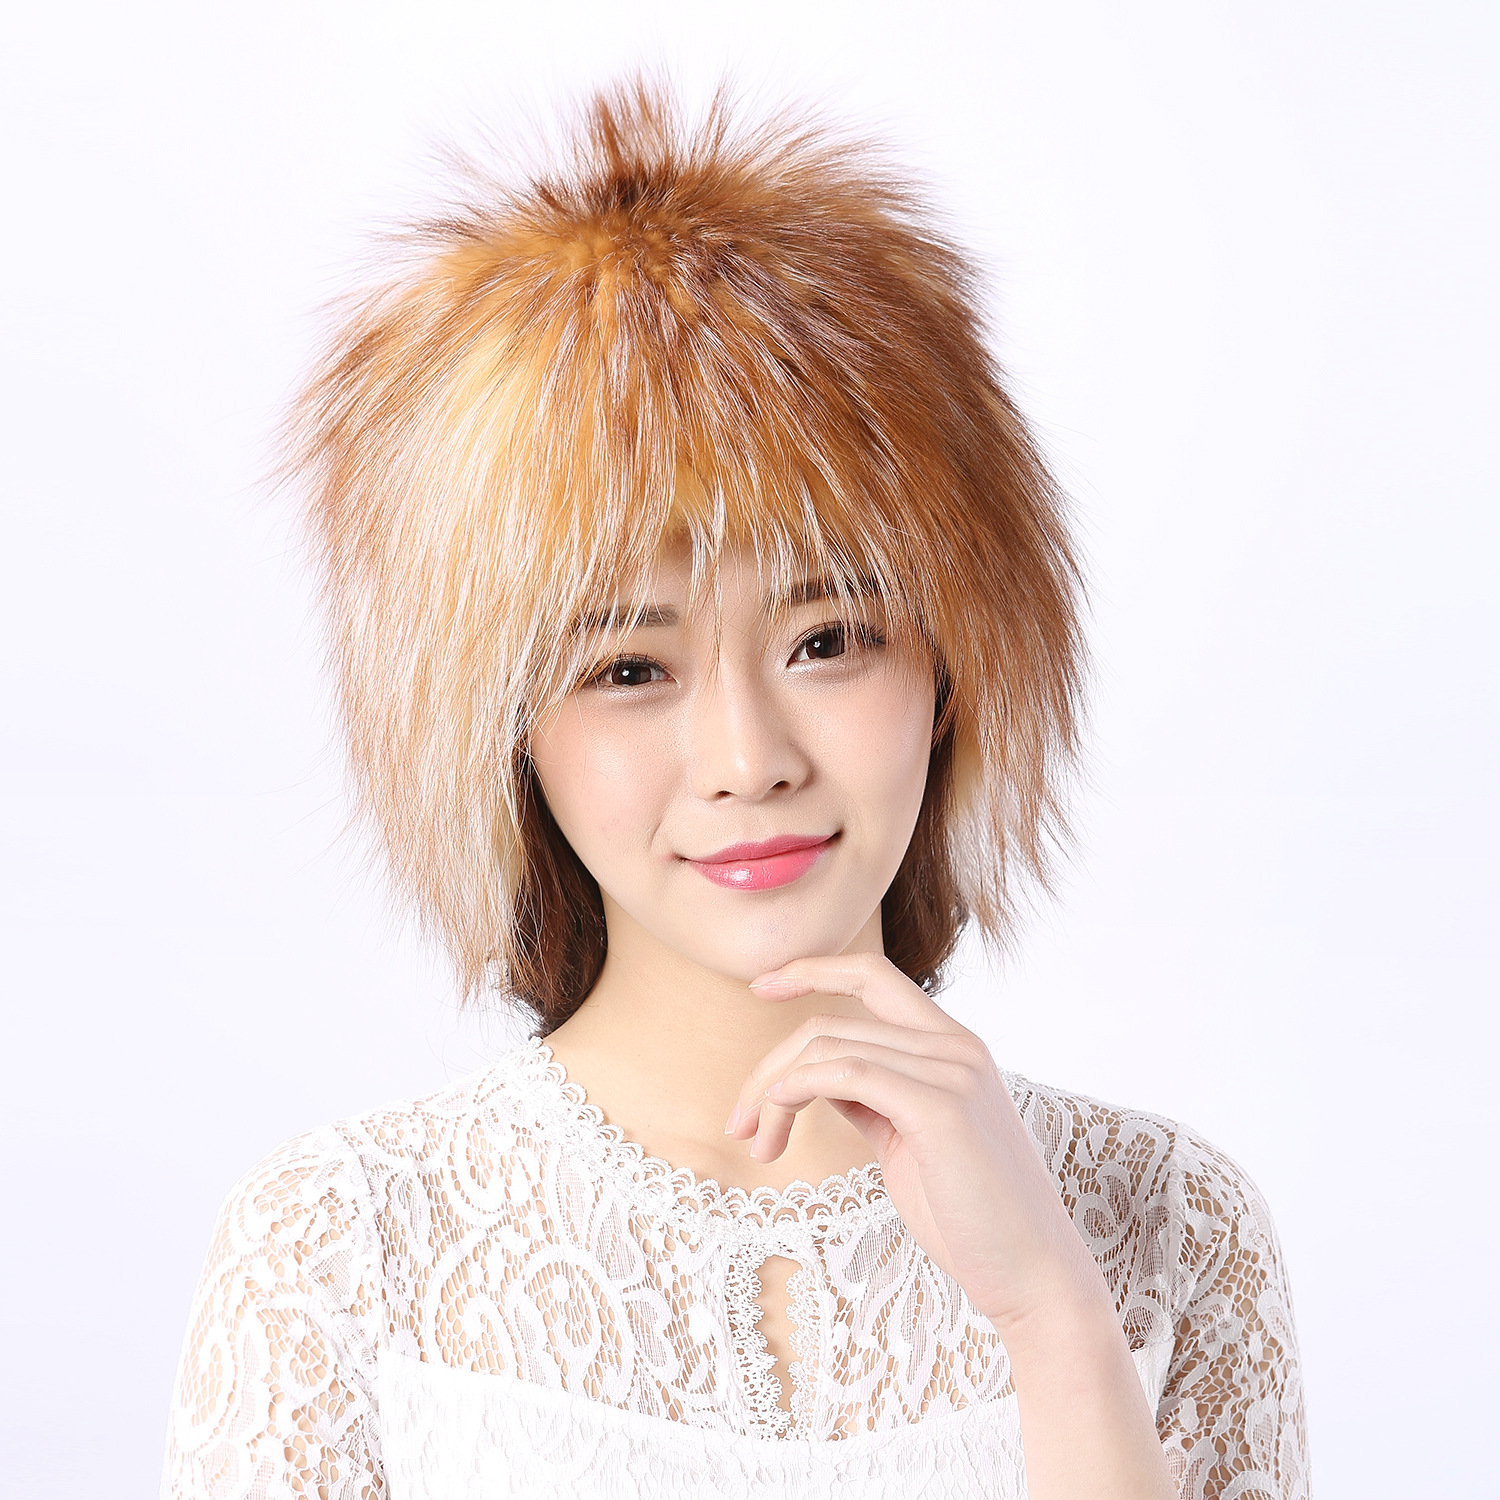 The new version of the autumn and winter fox fur hat whole skin fox fur hats warm ingwindproof fox back cap 2017 of the latest fashion have a lovely the hat of the ear lovely naughty lady s hat women s warm and beautiful style